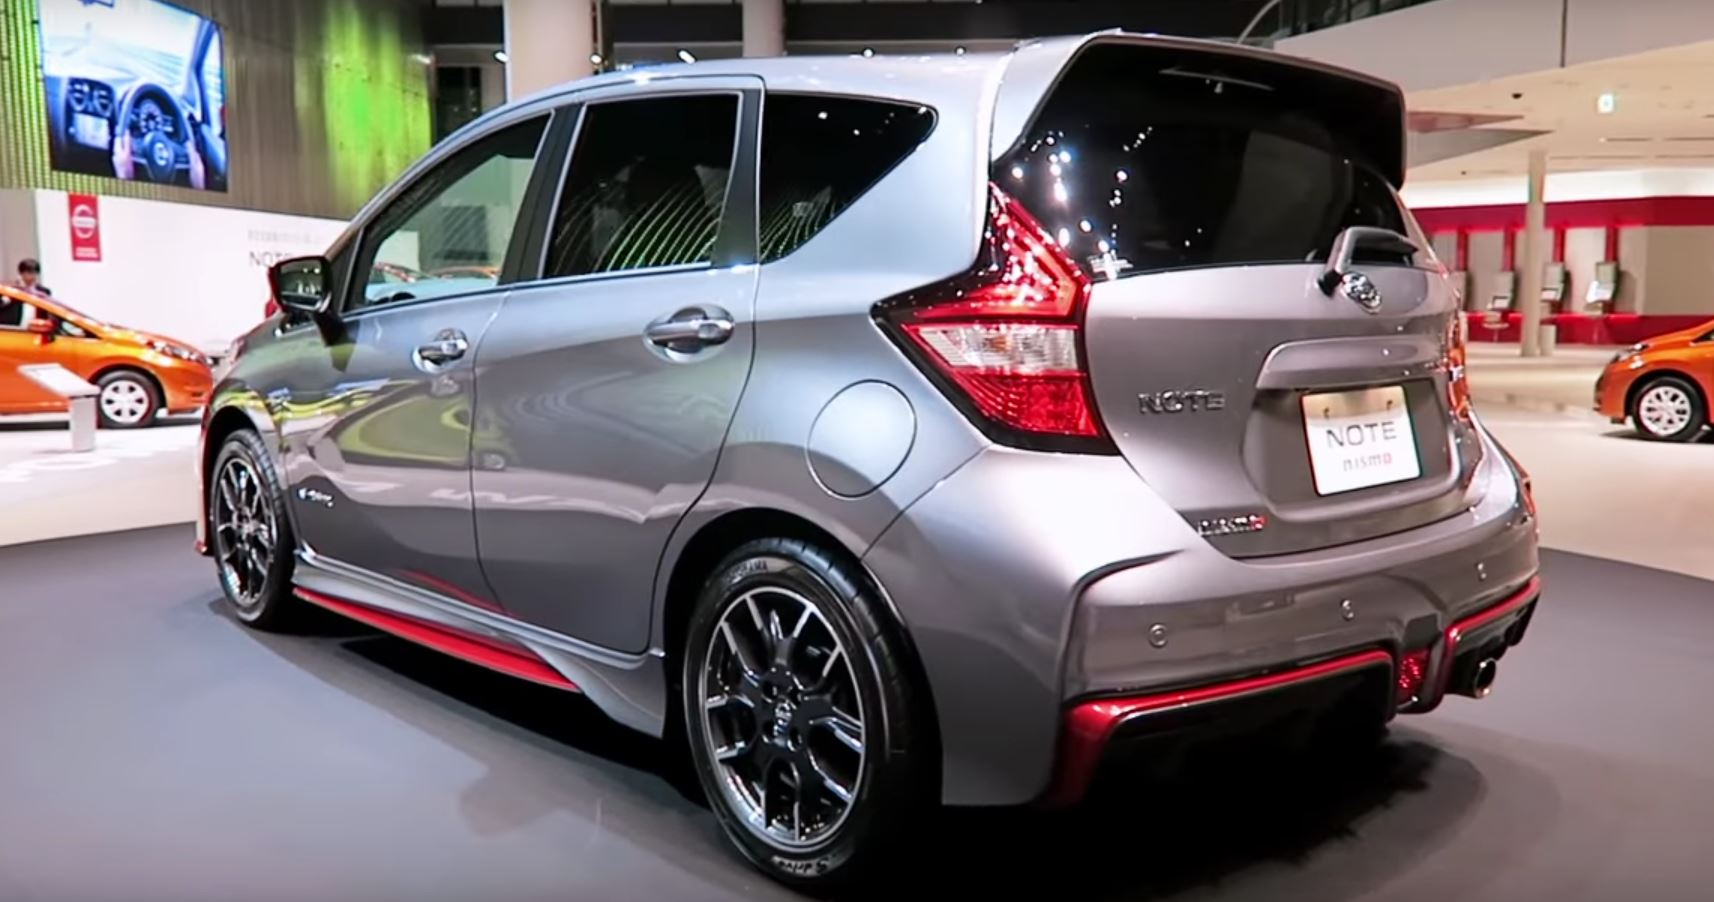 2018 nissan note. Delighful Nissan Nissan Note E 2017 Tampil Hybrid Throughout 2018 Nissan Note V